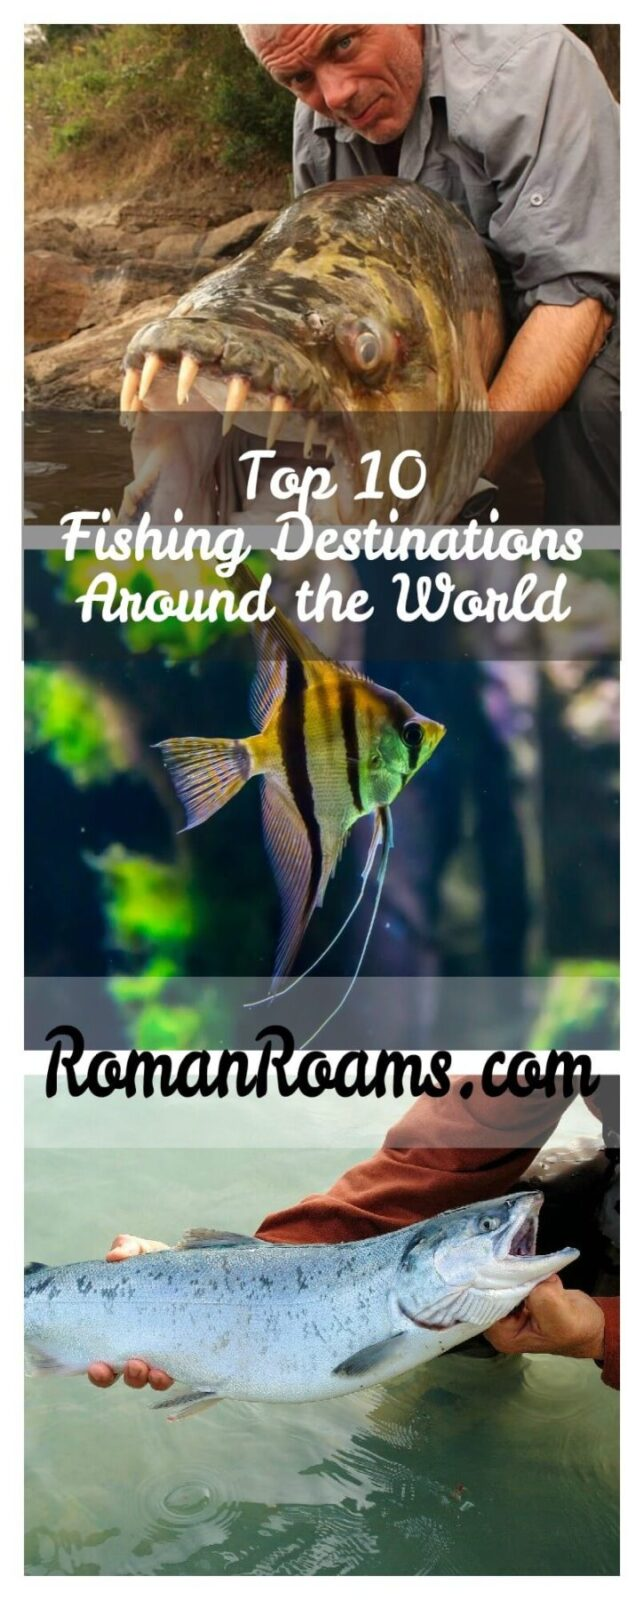 Best fishing destinations around the world to have the most amazing fishing experience